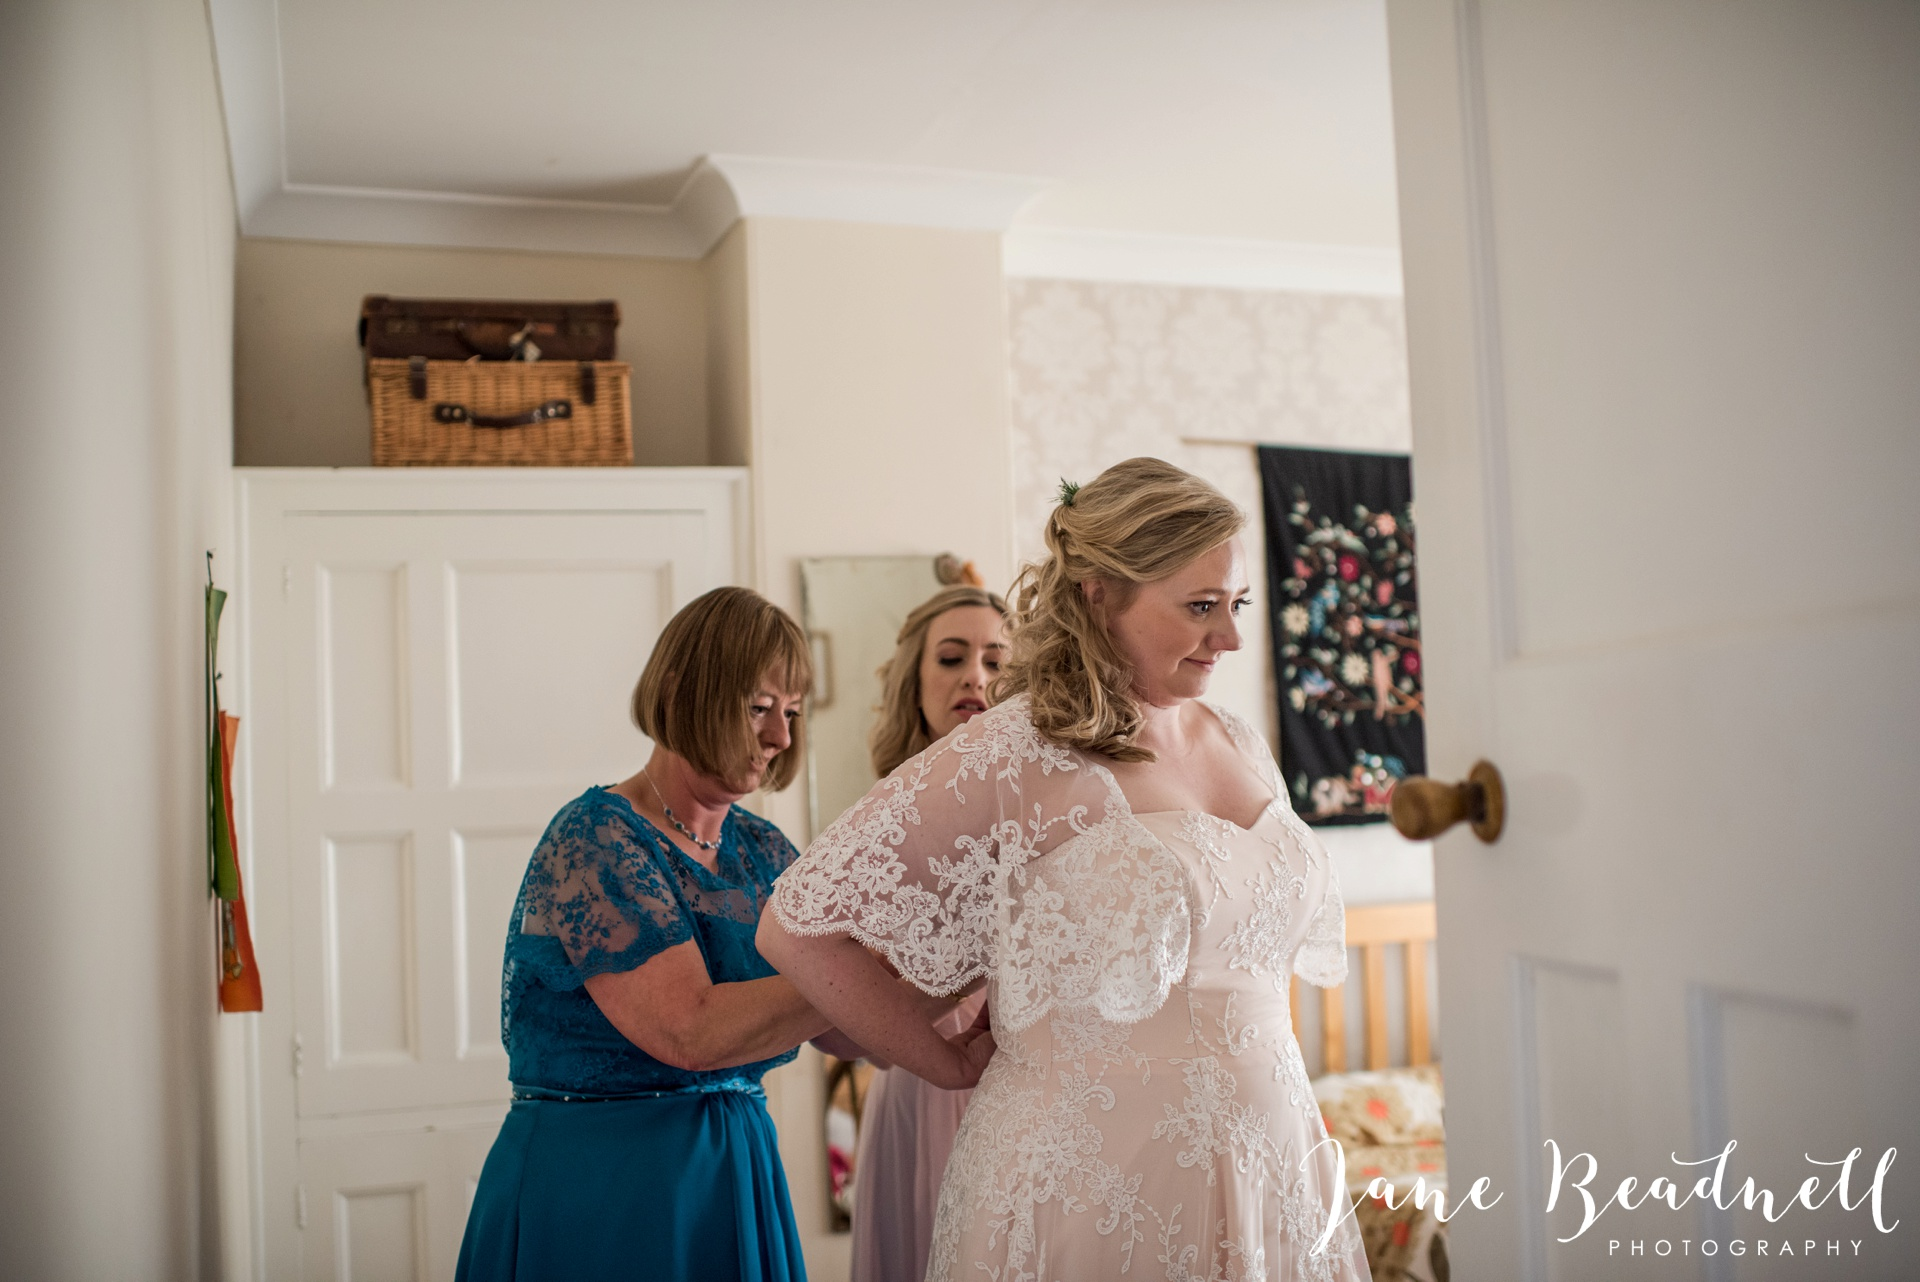 Yorkshire Wedding Photography the cheerful Chilli Barn Wedding by Jane Beadnell Photography_0030